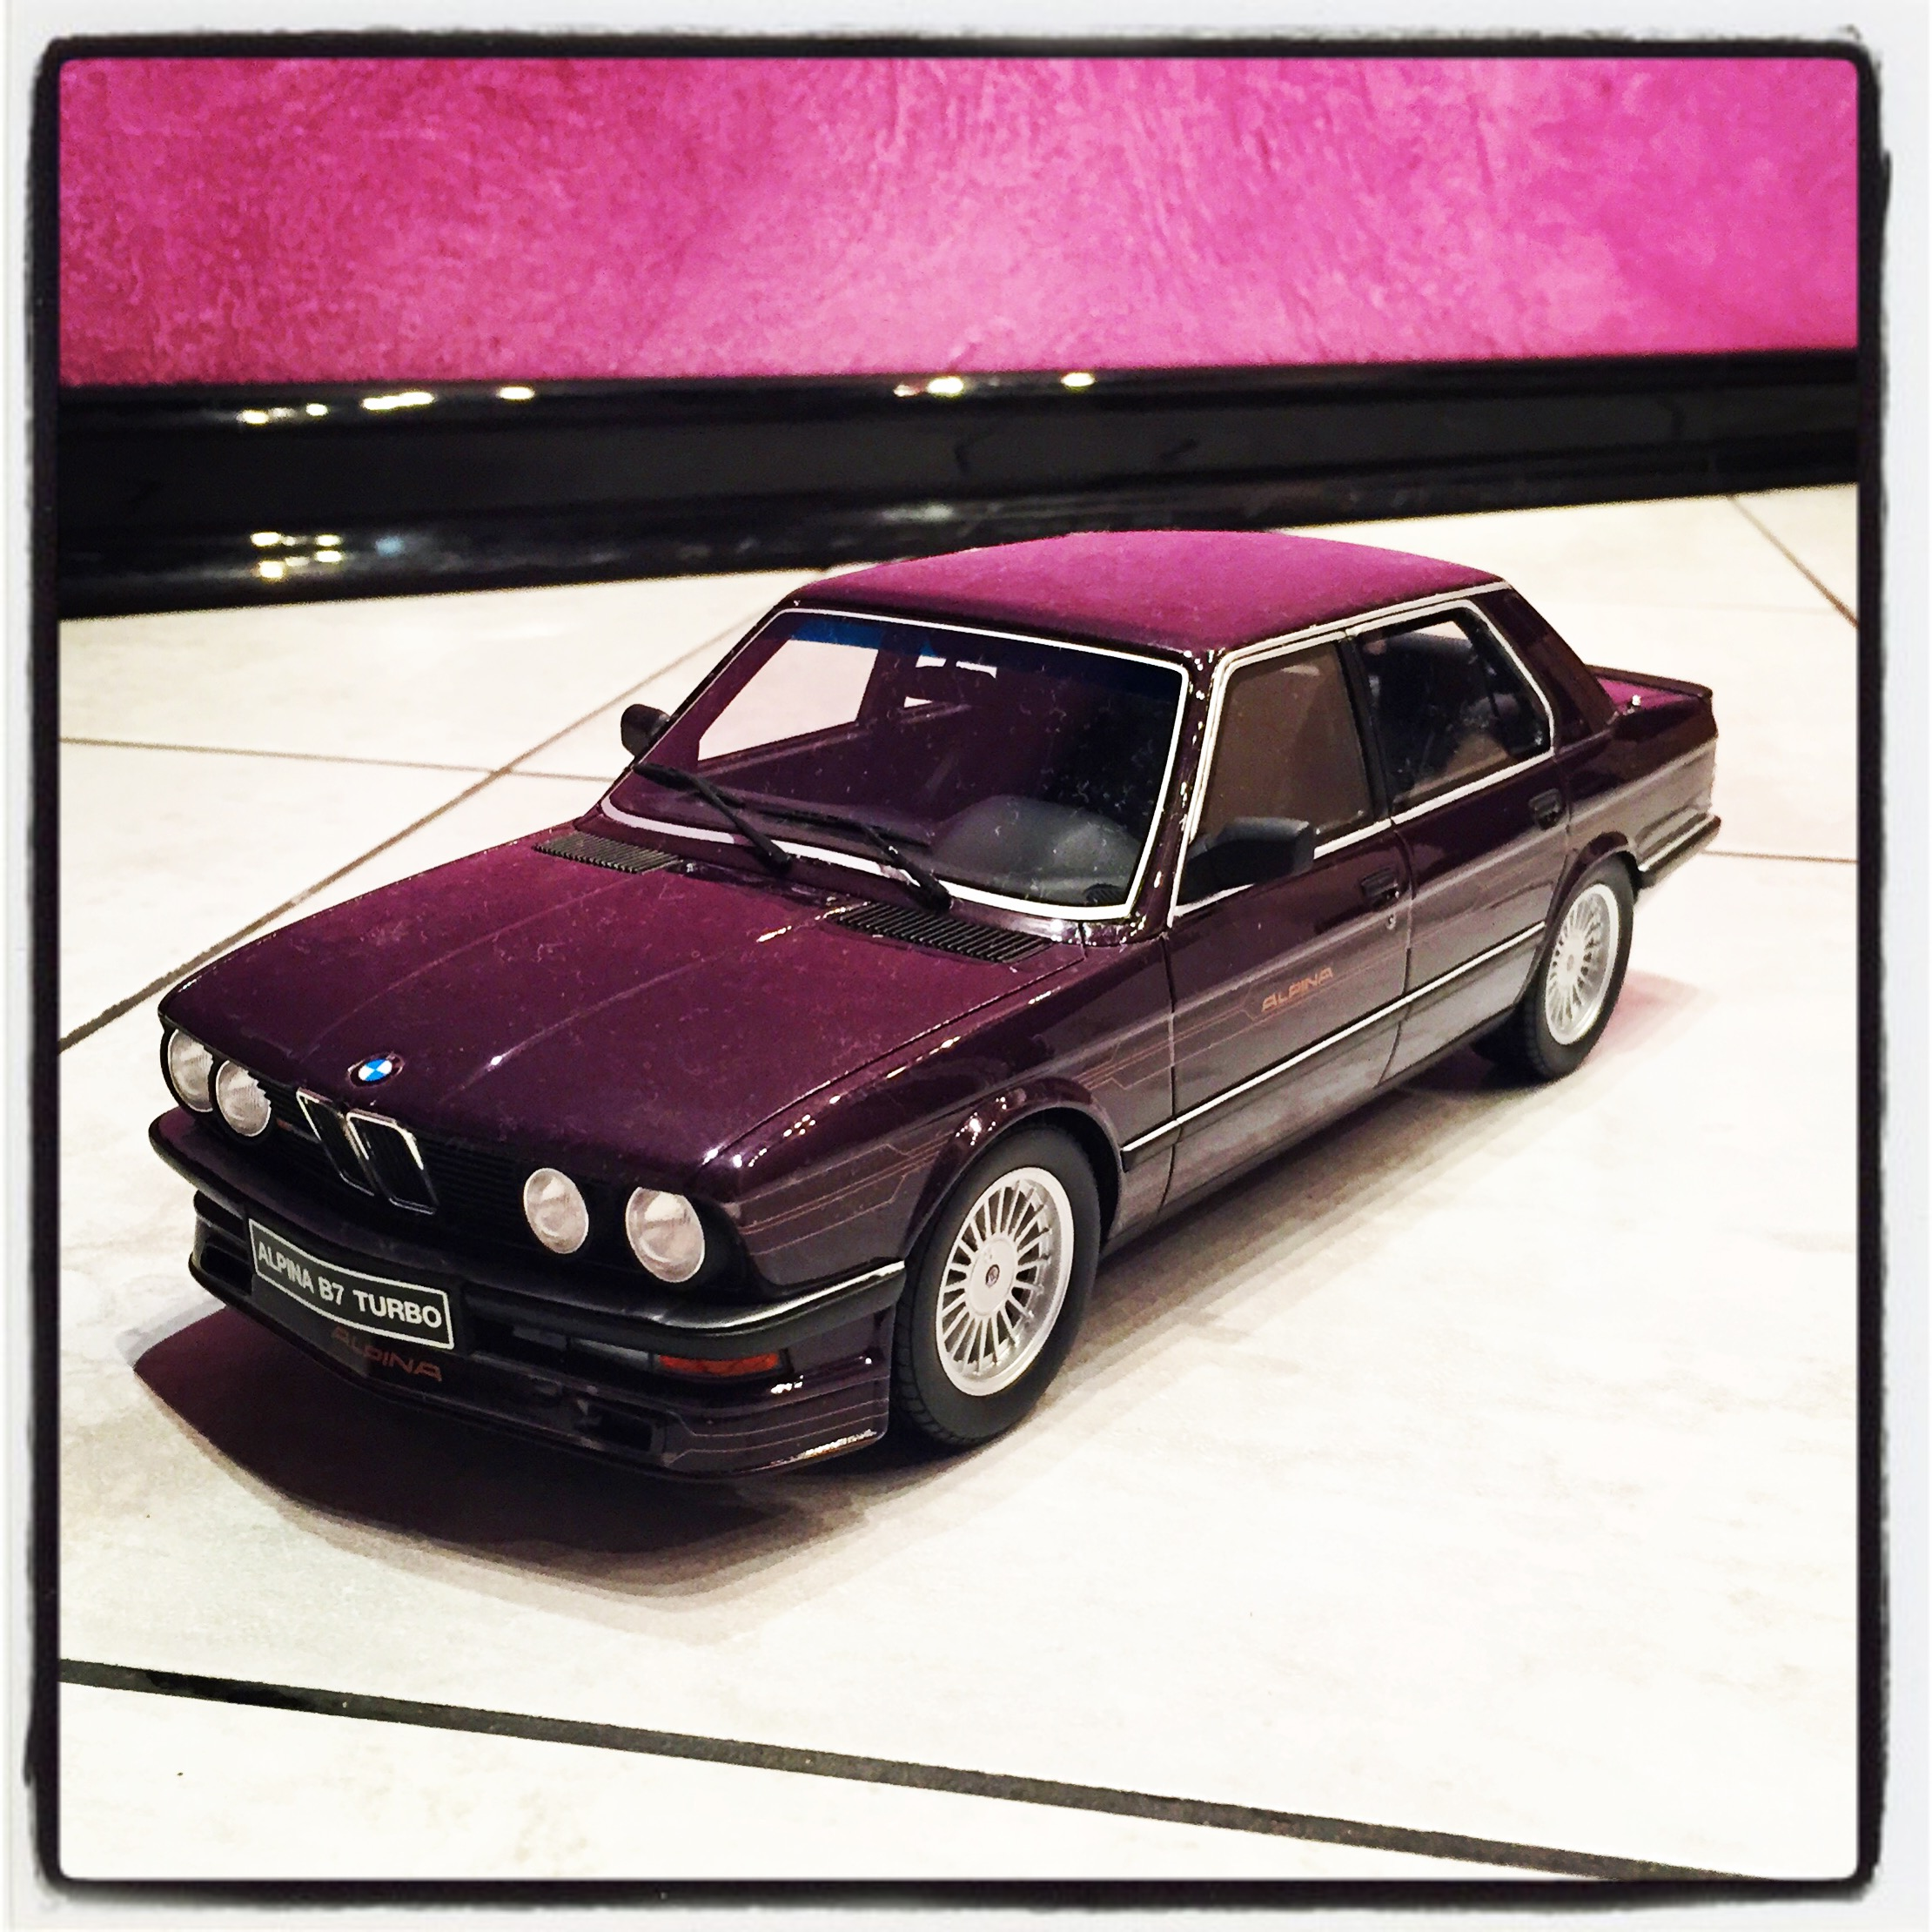 Alpina B7 (E28) Turbo, le 2480 of 2,500pcs. (otto)